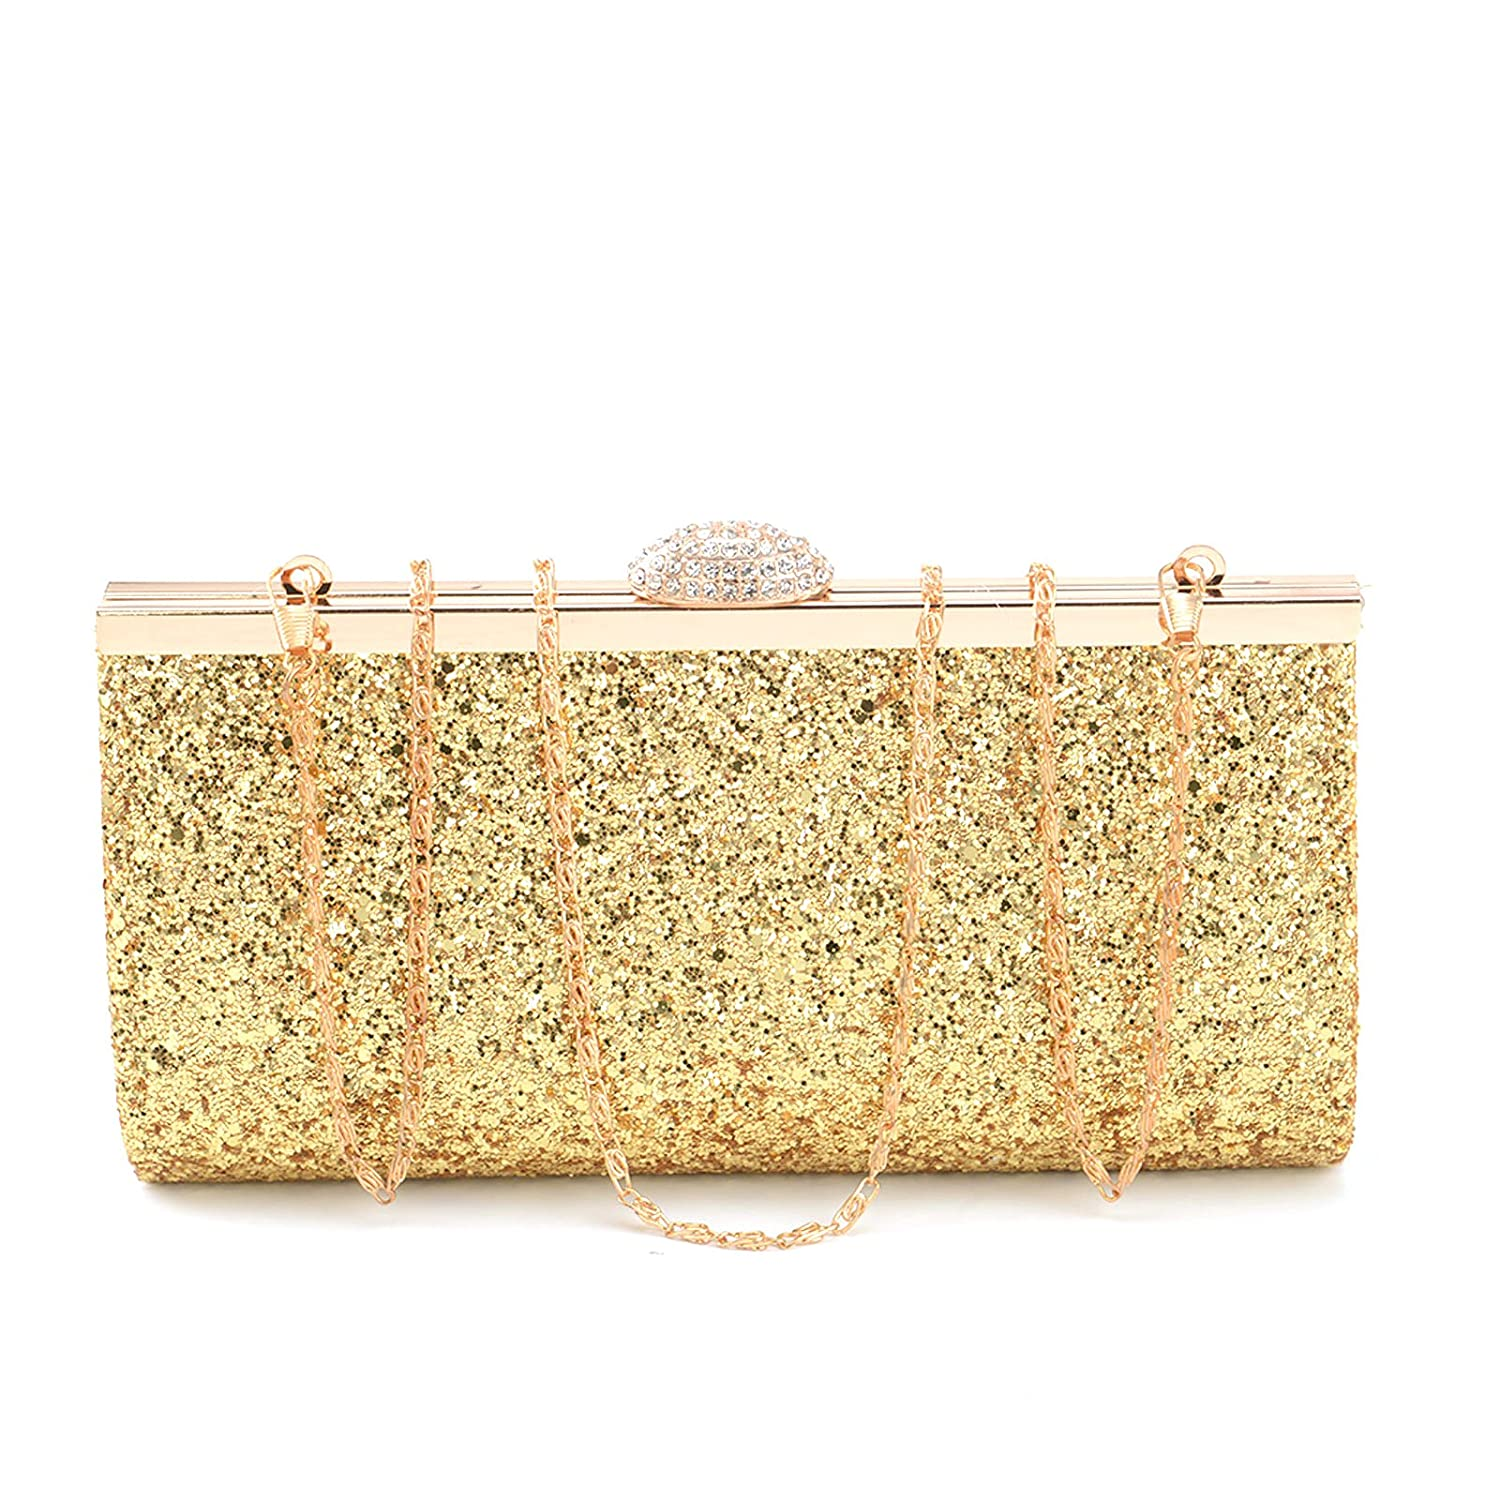 AllRight Women Fashion Gorgeous Glitter Clutch Bag Handbag Purse for Evening Prom Party - Assorted Sparkly Handbag Black